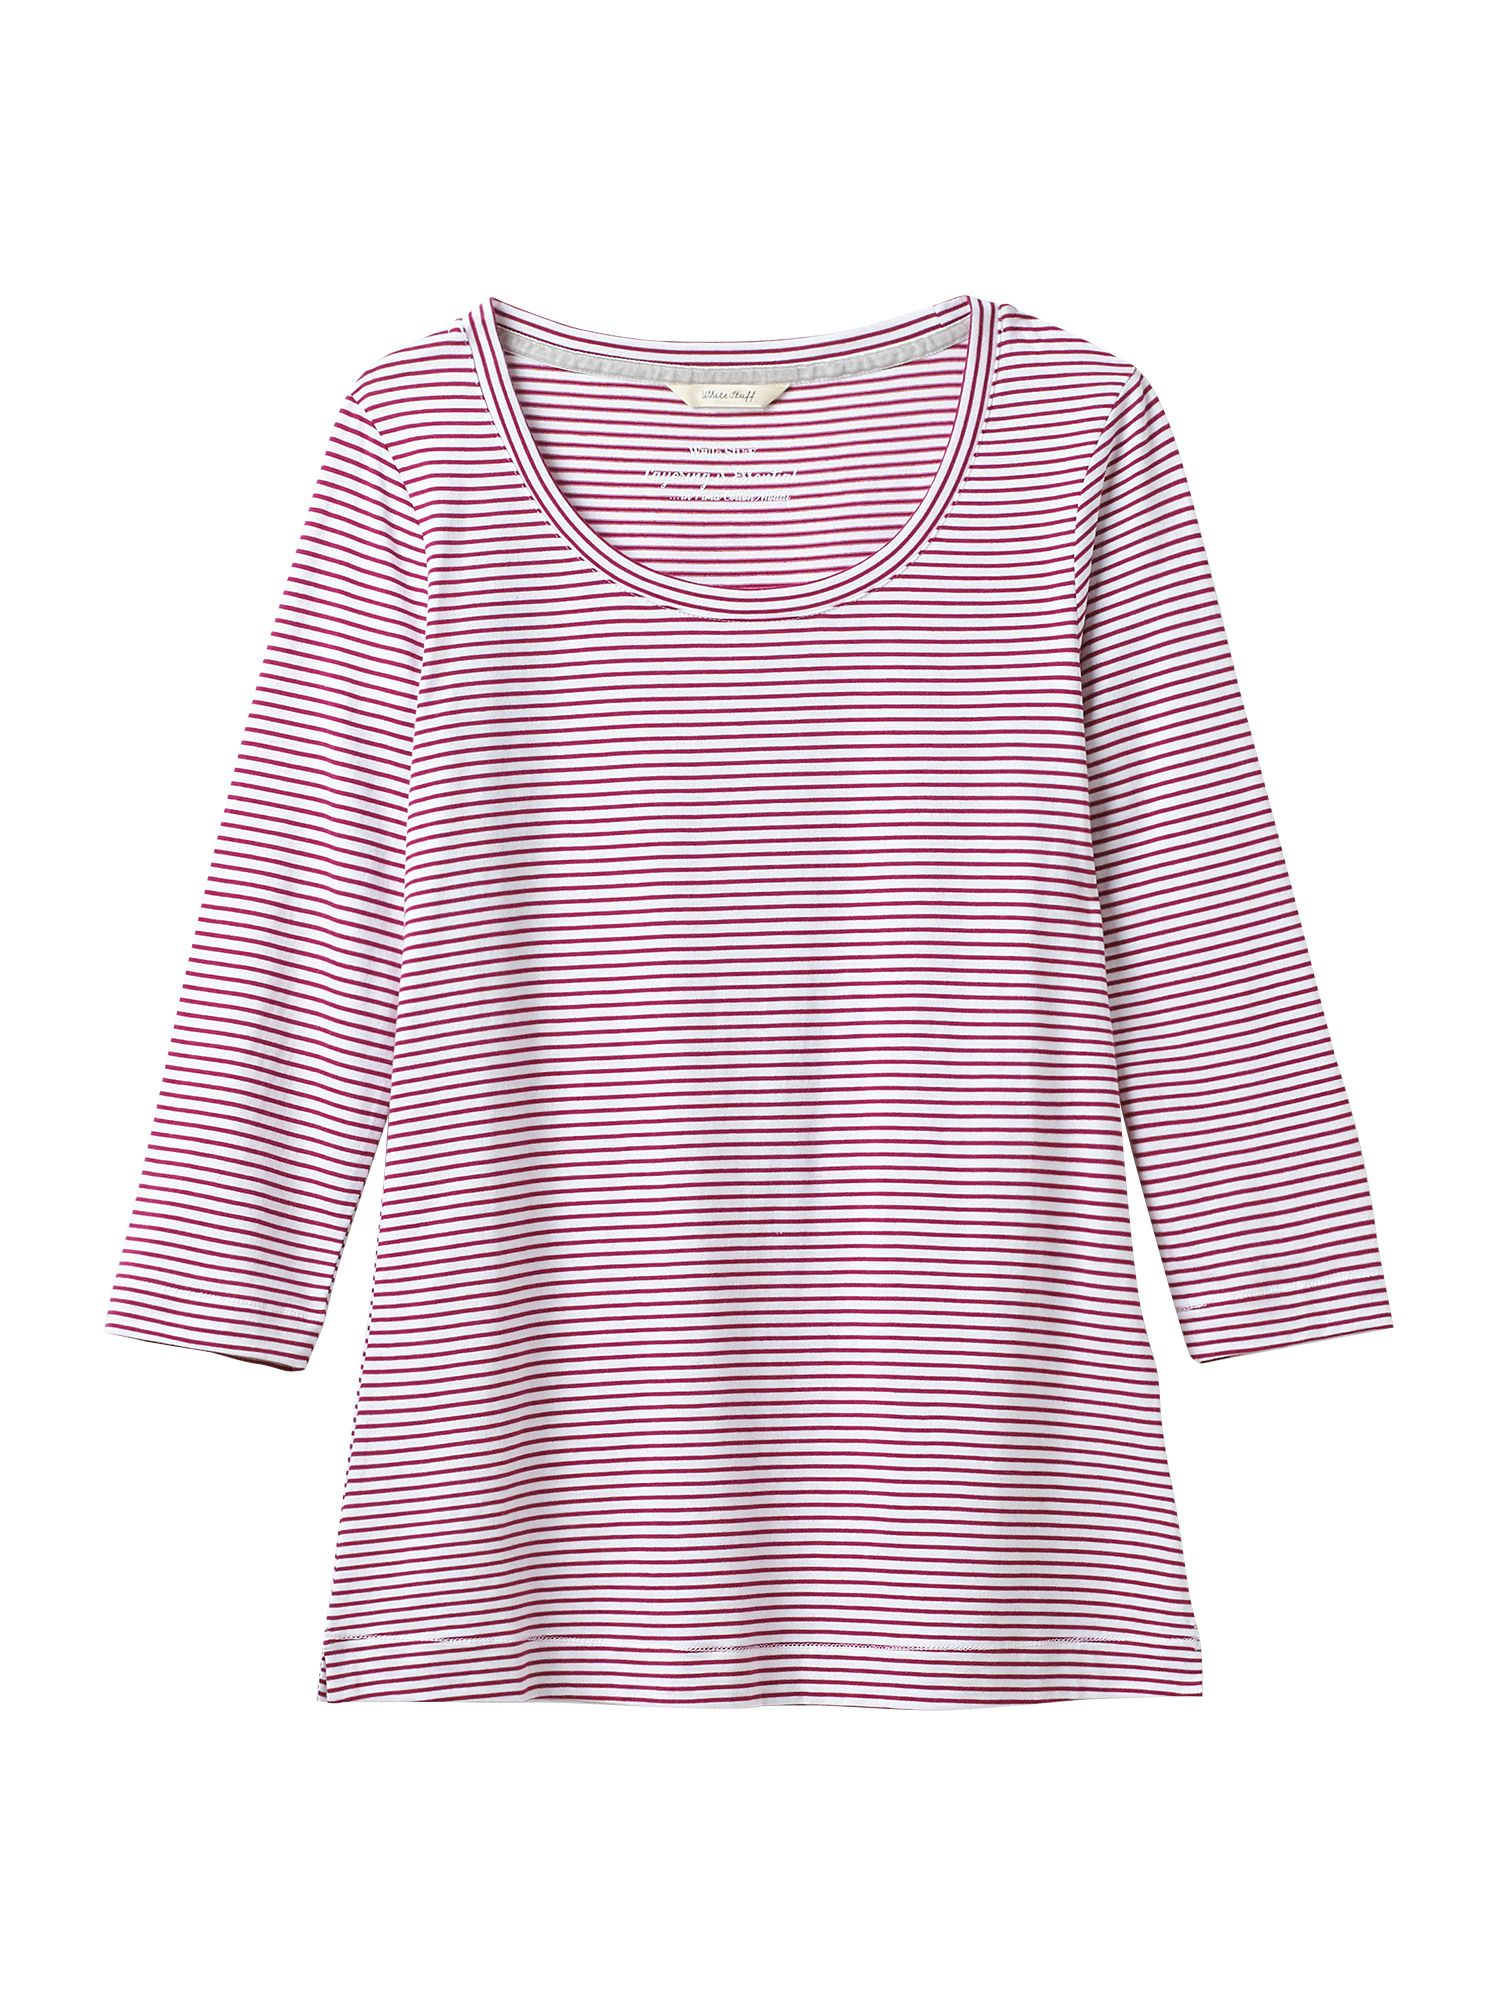 White Stuff 34 Brushed Layer Jersey Tee, Berry